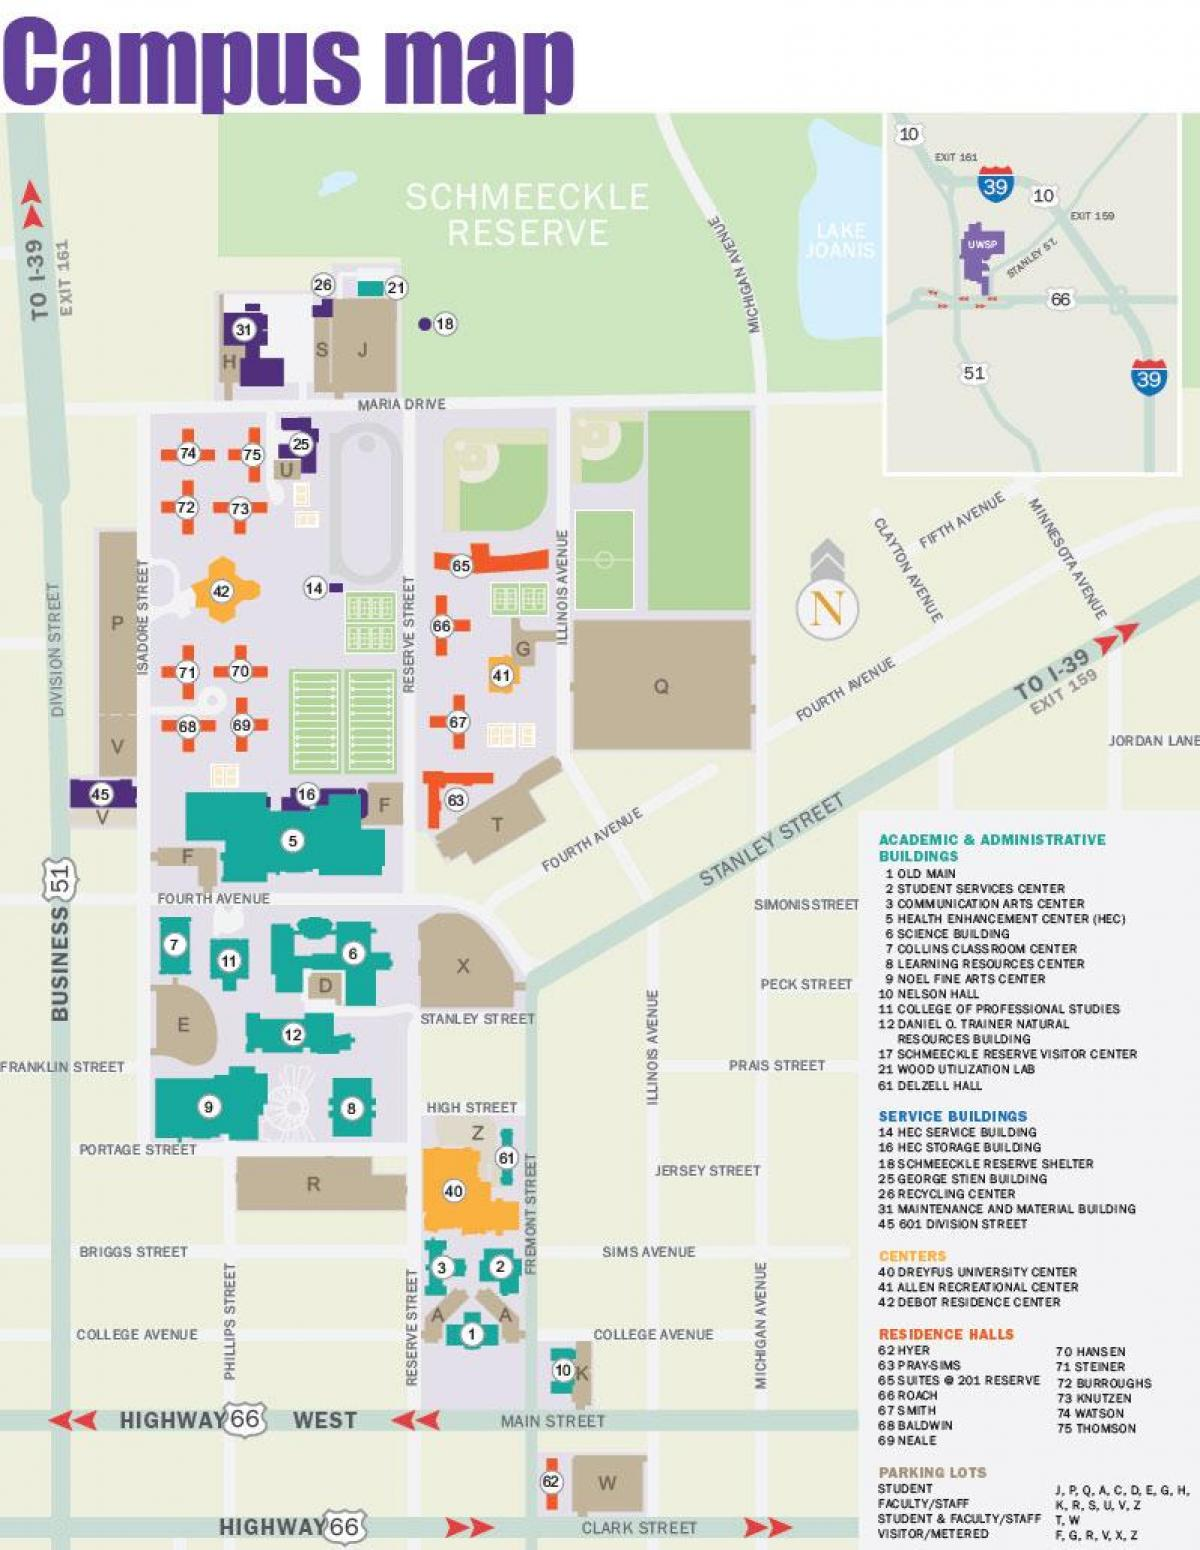 University Of Memphis Campus Map : university, memphis, campus, University, Memphis, Campus, Location, Catalog, Online